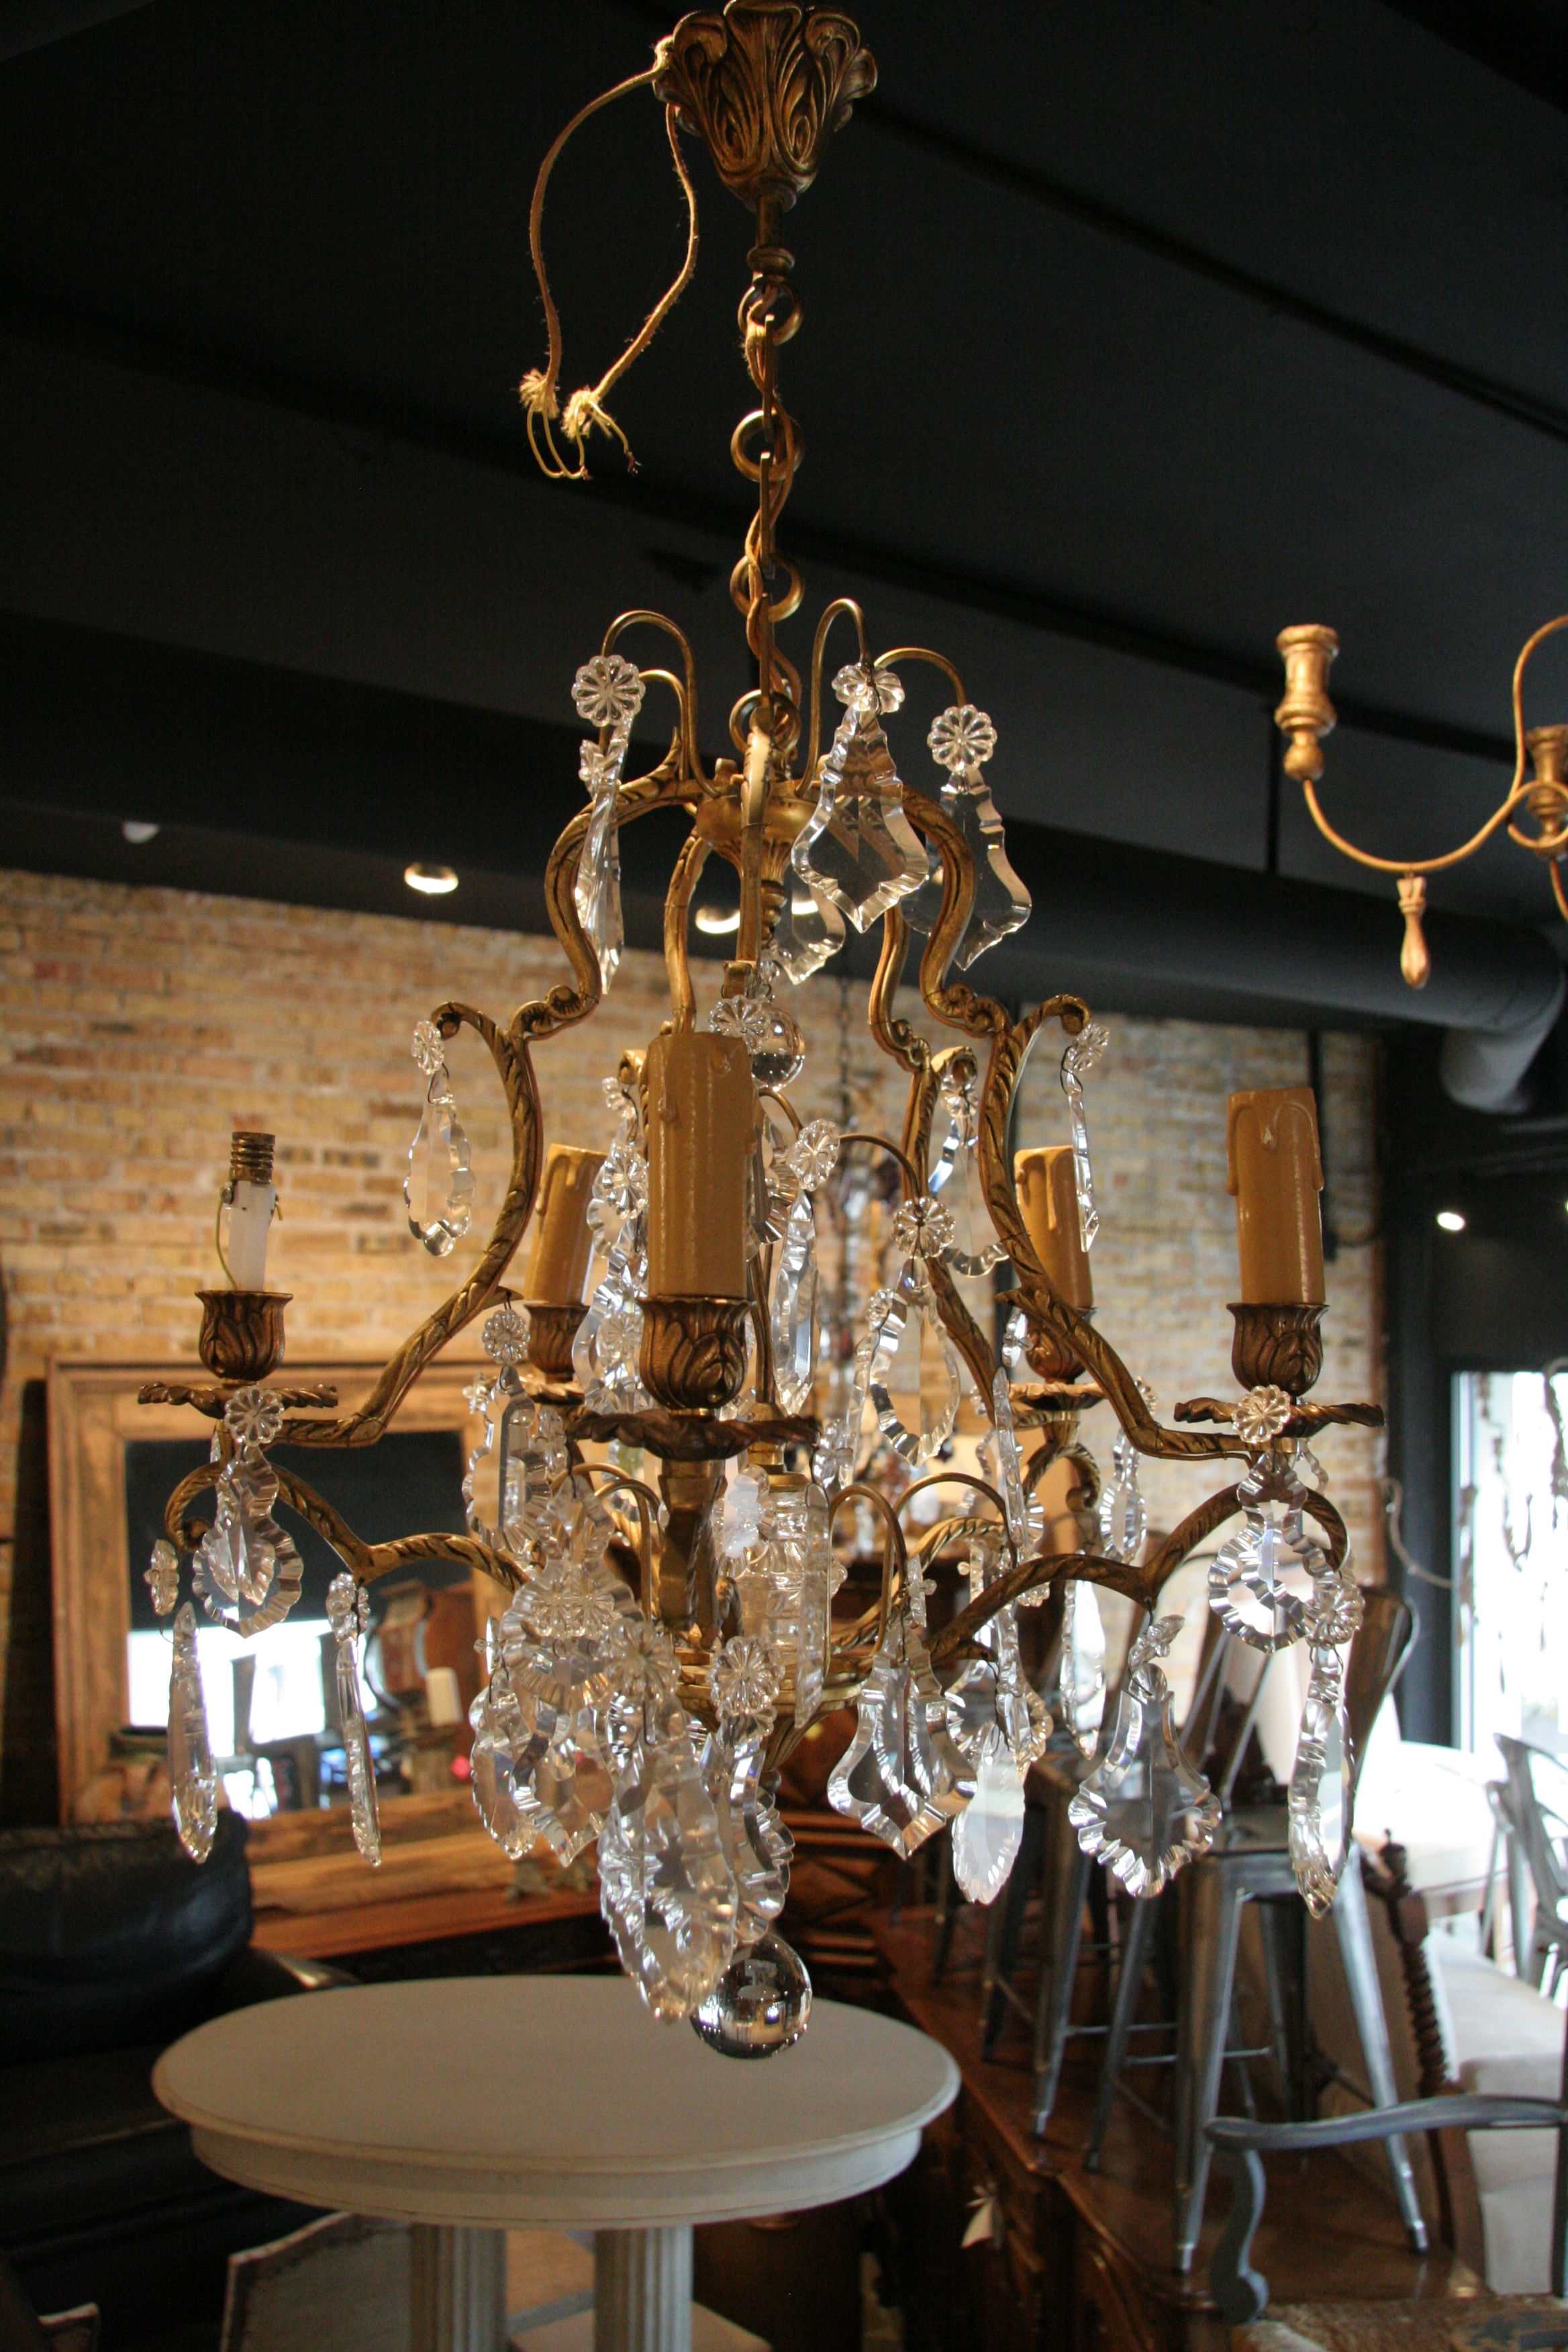 Antique French 5 Light Brass And Crystal Chandelier Within French Antique Chandeliers (Image 3 of 15)